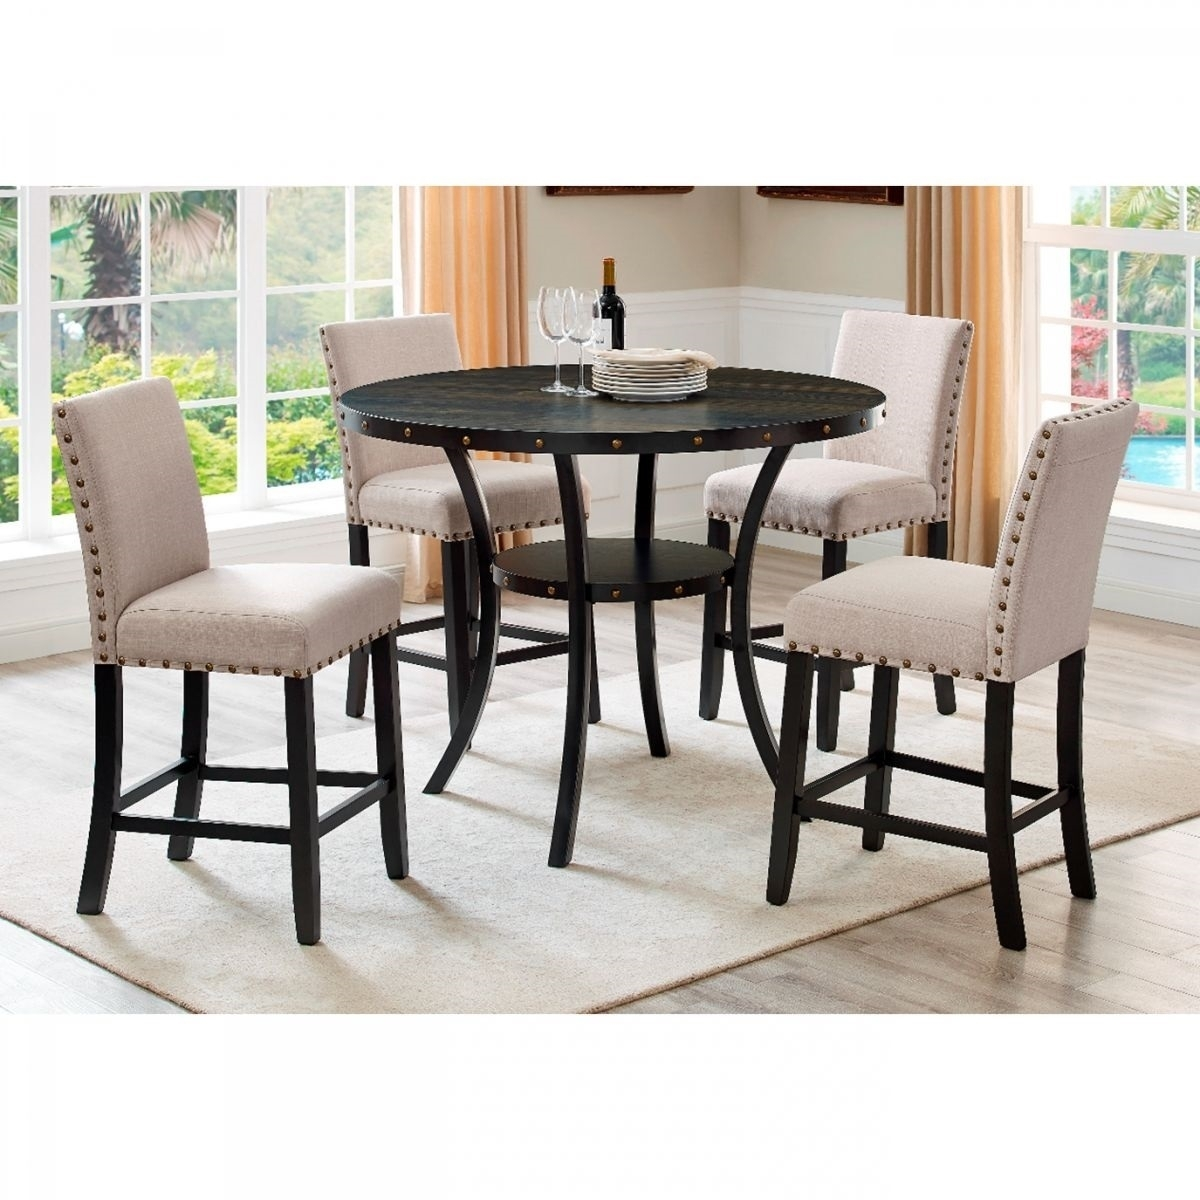 Madison 5 Pc Counter Height Dining Room | Badcock & More For 2018 Valencia 3 Piece Counter Sets With Bench (Image 9 of 20)